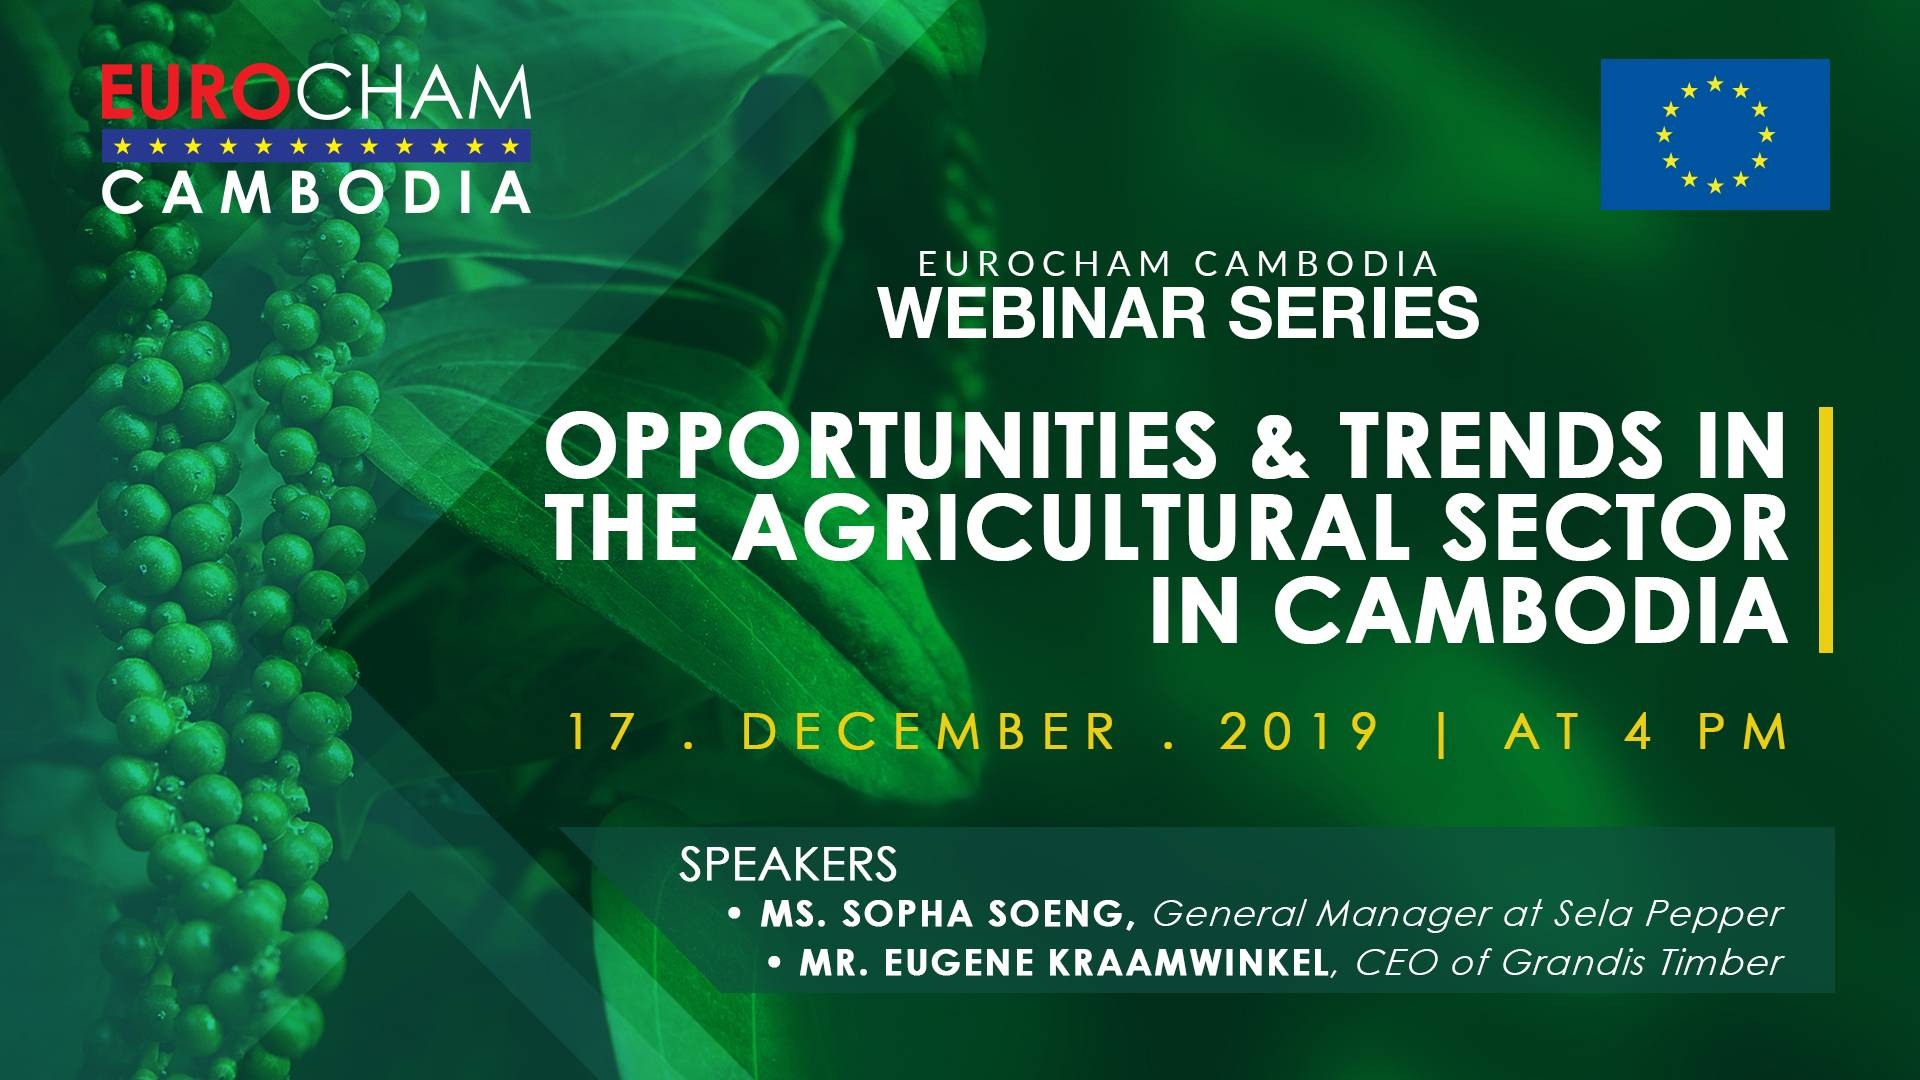 Opportunities and Trends in the Agricultural Sector in Cambodia